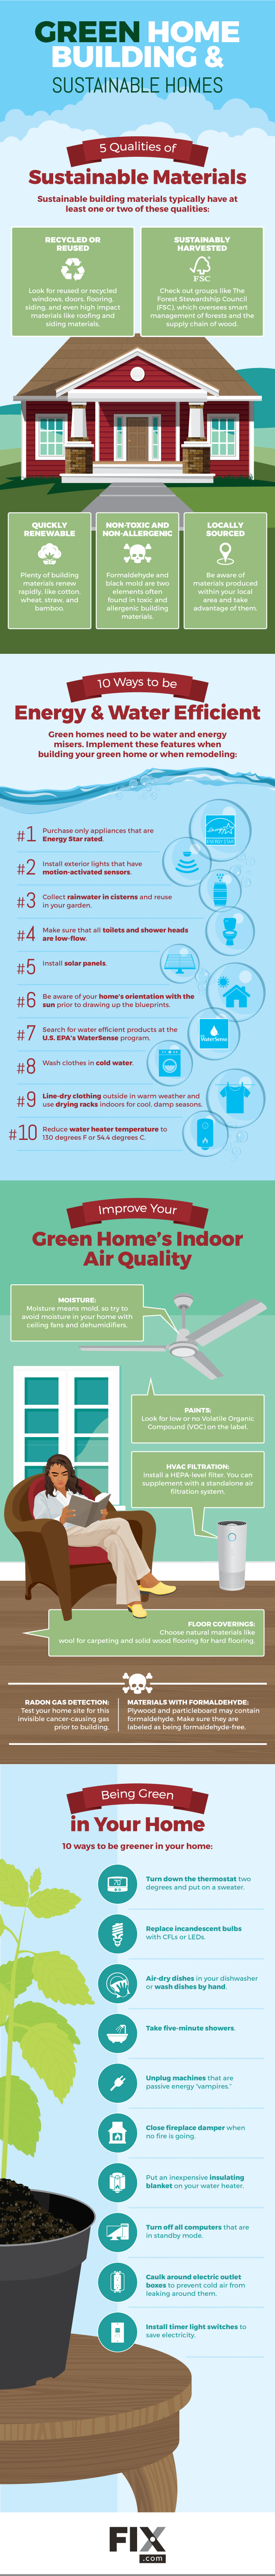 Make a Green Difference: How to Build Sustainable, Environment-Friendly Homes - Infographic